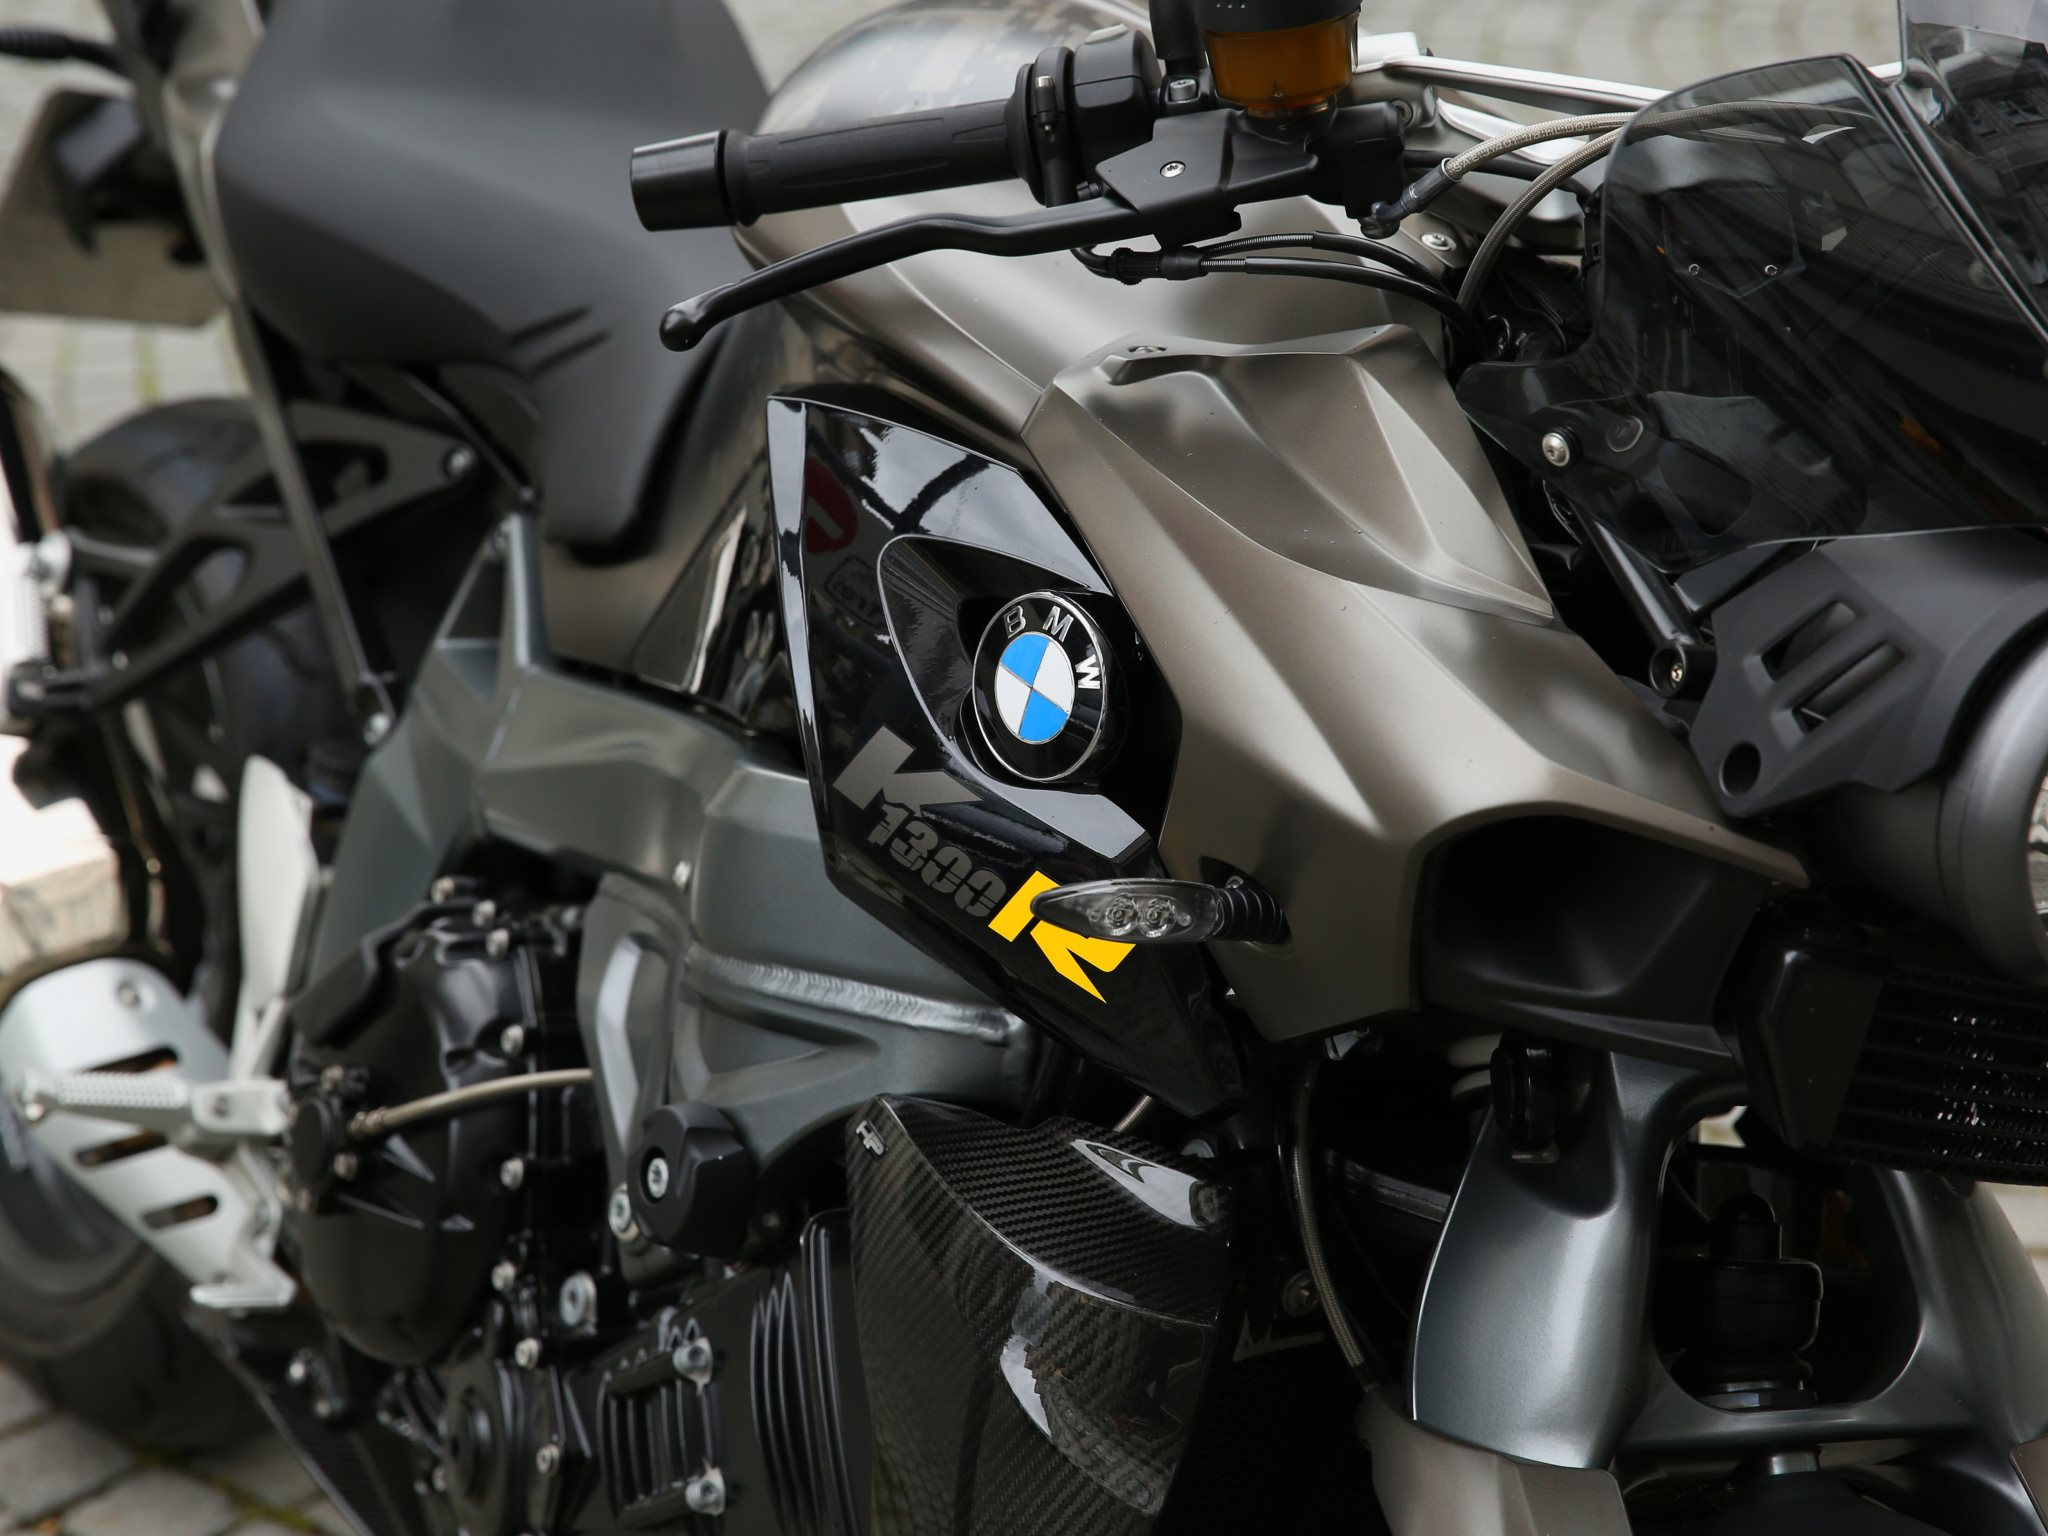 pics for gt motorcycle engine wallpaper hd